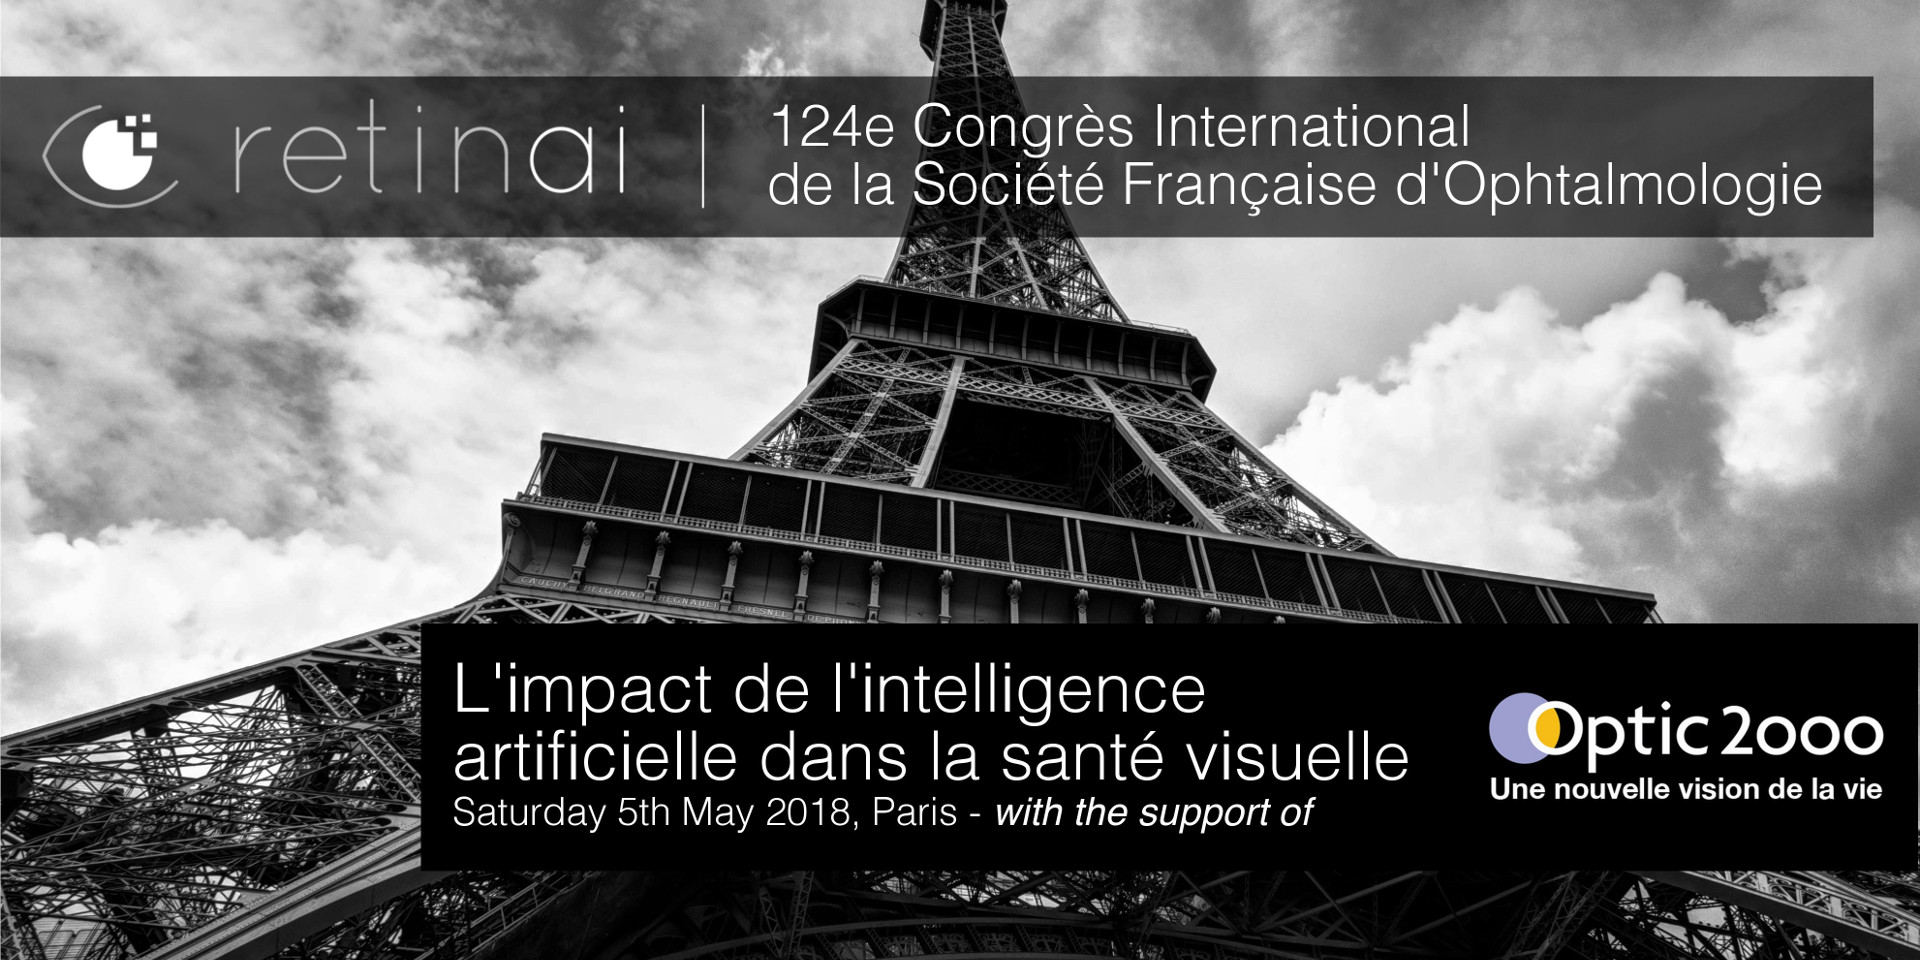 124e International congress de la SFO [May'18] - RetinAI had the pleasure to present in the 124e Congrès International de la Société Française d'Ophthalmologie in the session: 'L'impact de l'intelligence artificielle dans la santé visuelle', organised by Optic 2000 in Paris! Wonderful day presenting how AI and machine learning are changing the current paradigm of screening and monitoring of eye diseases.